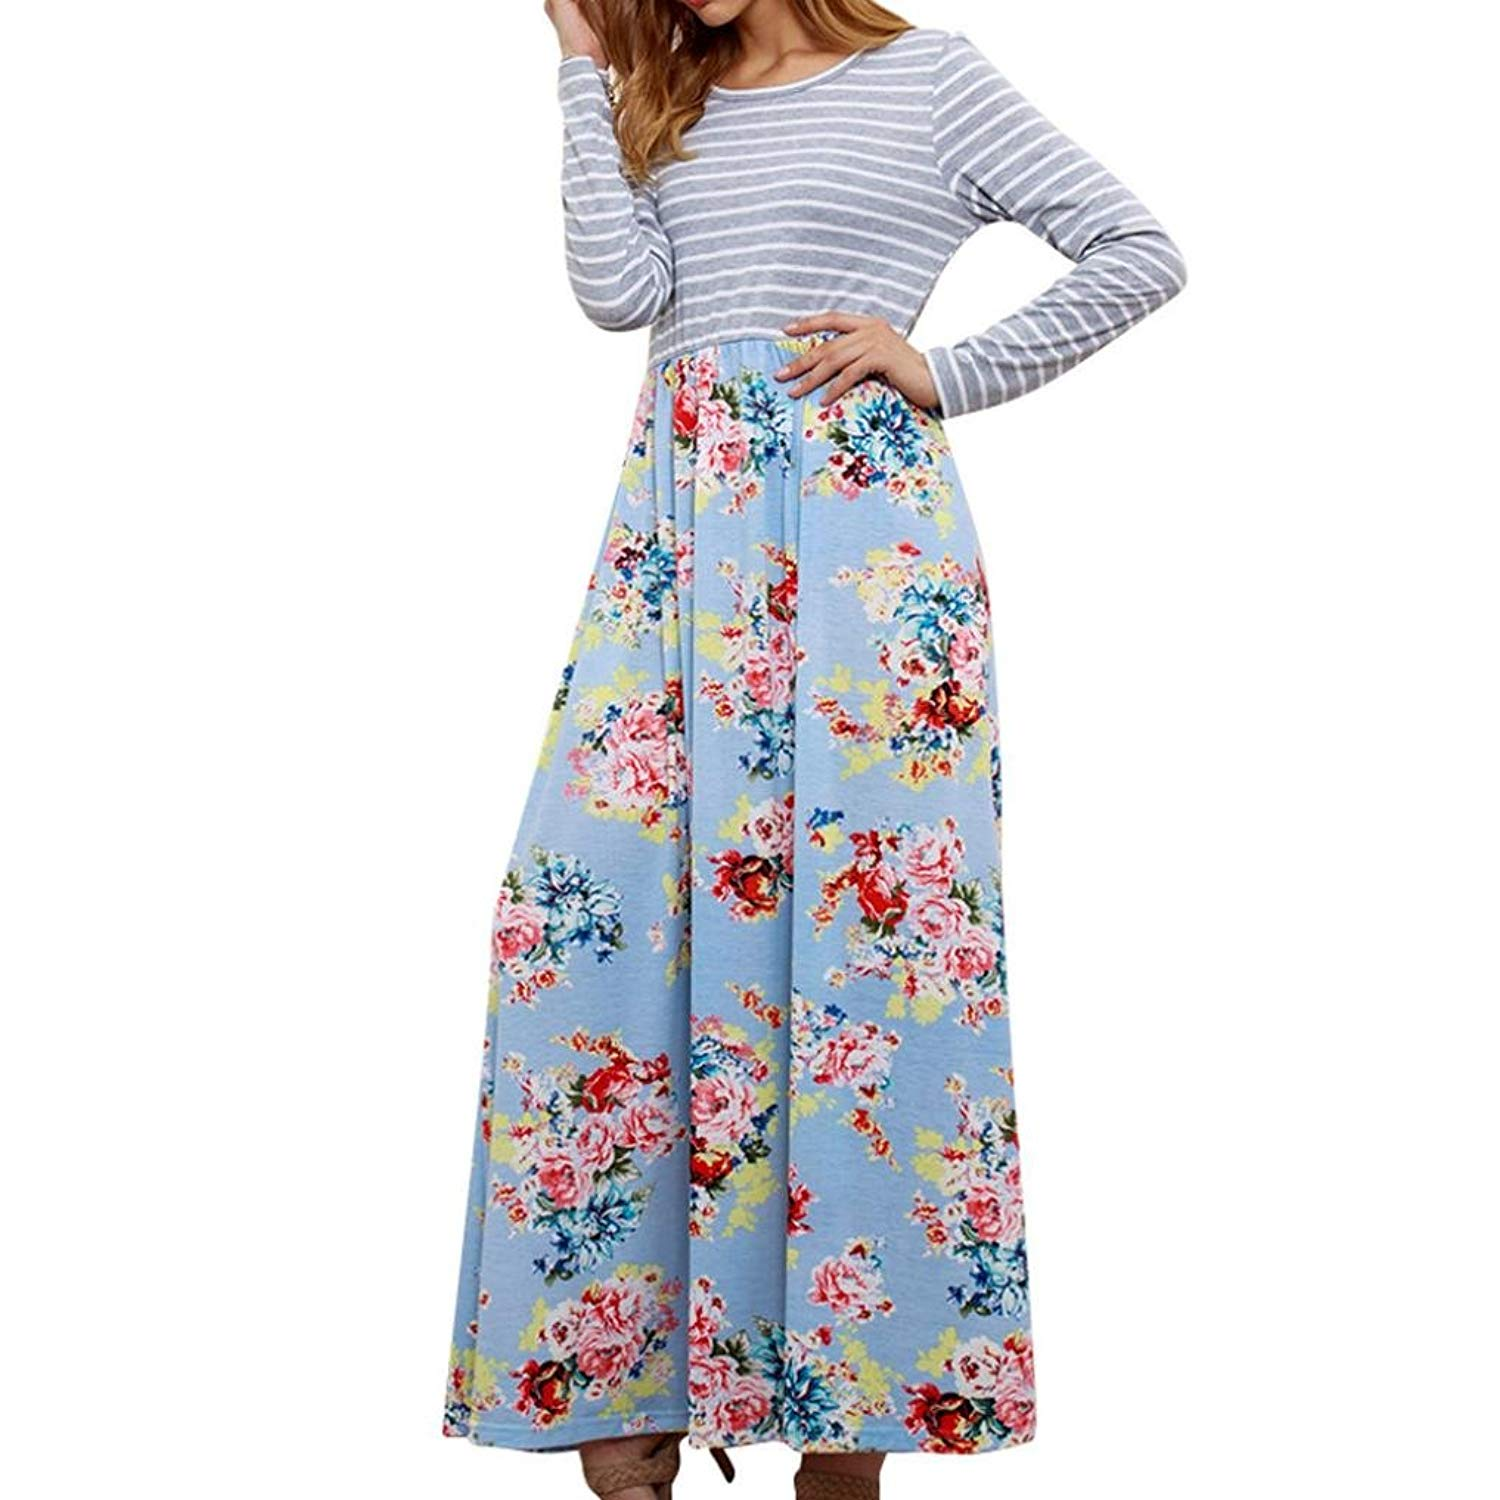 4d972de116 Get Quotations · Women s Floral Print Casual Long Sleeve A-line Loose T-Shirt  Long Maxi Dresses